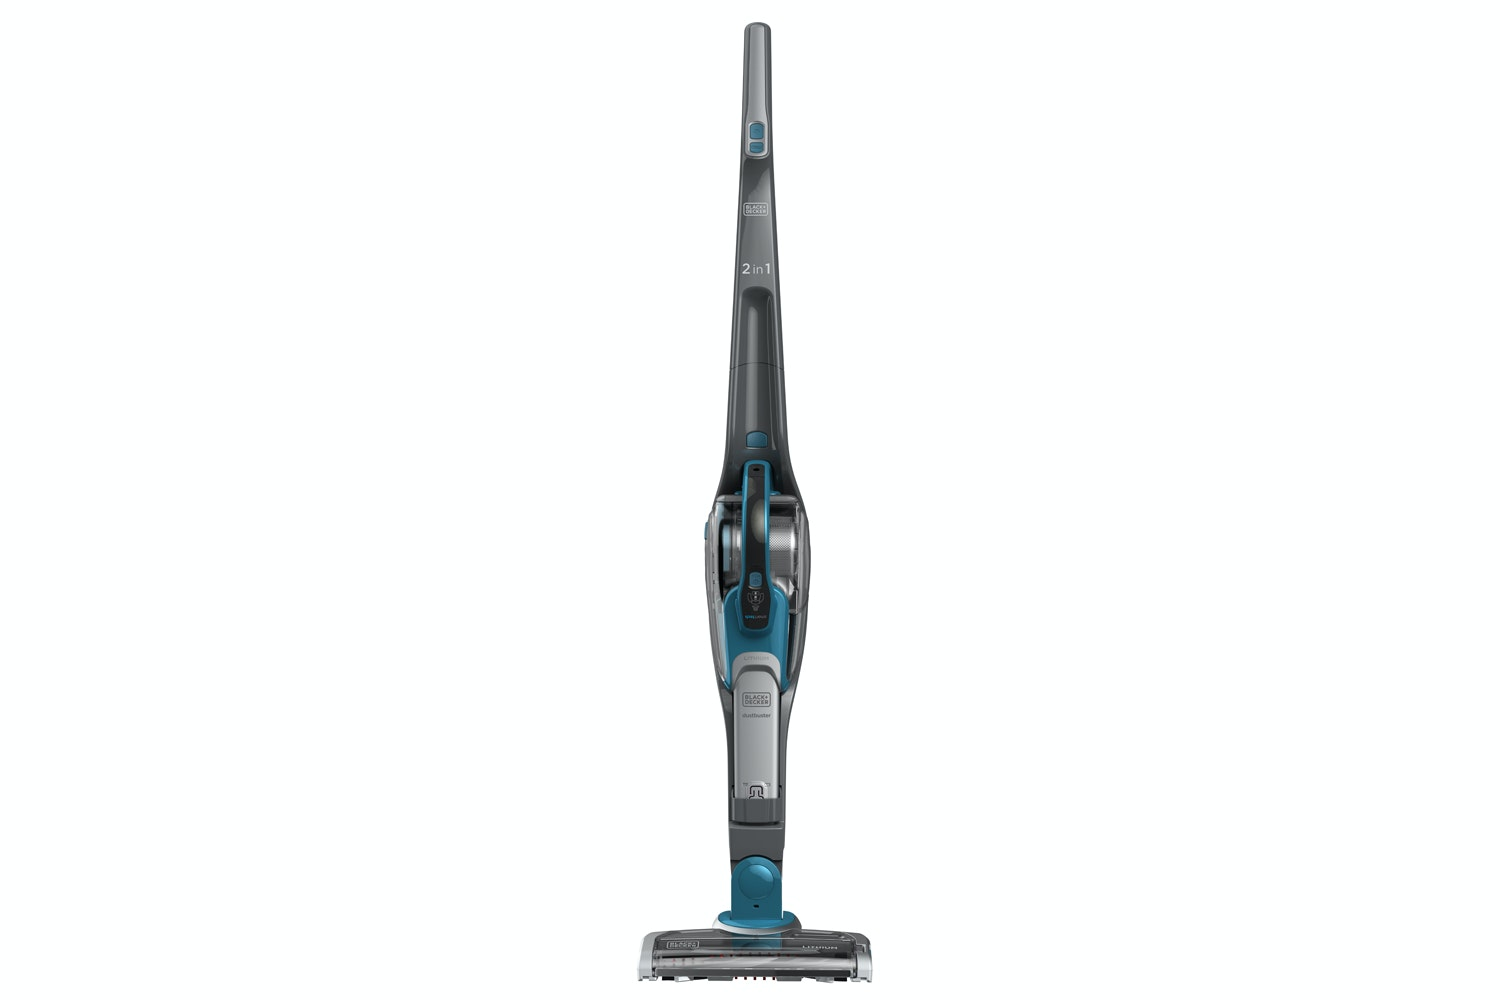 Black & Decker 2-in-1 Cordless Vacuum with Smart Tech Sensor | SVJ520BFS-GB